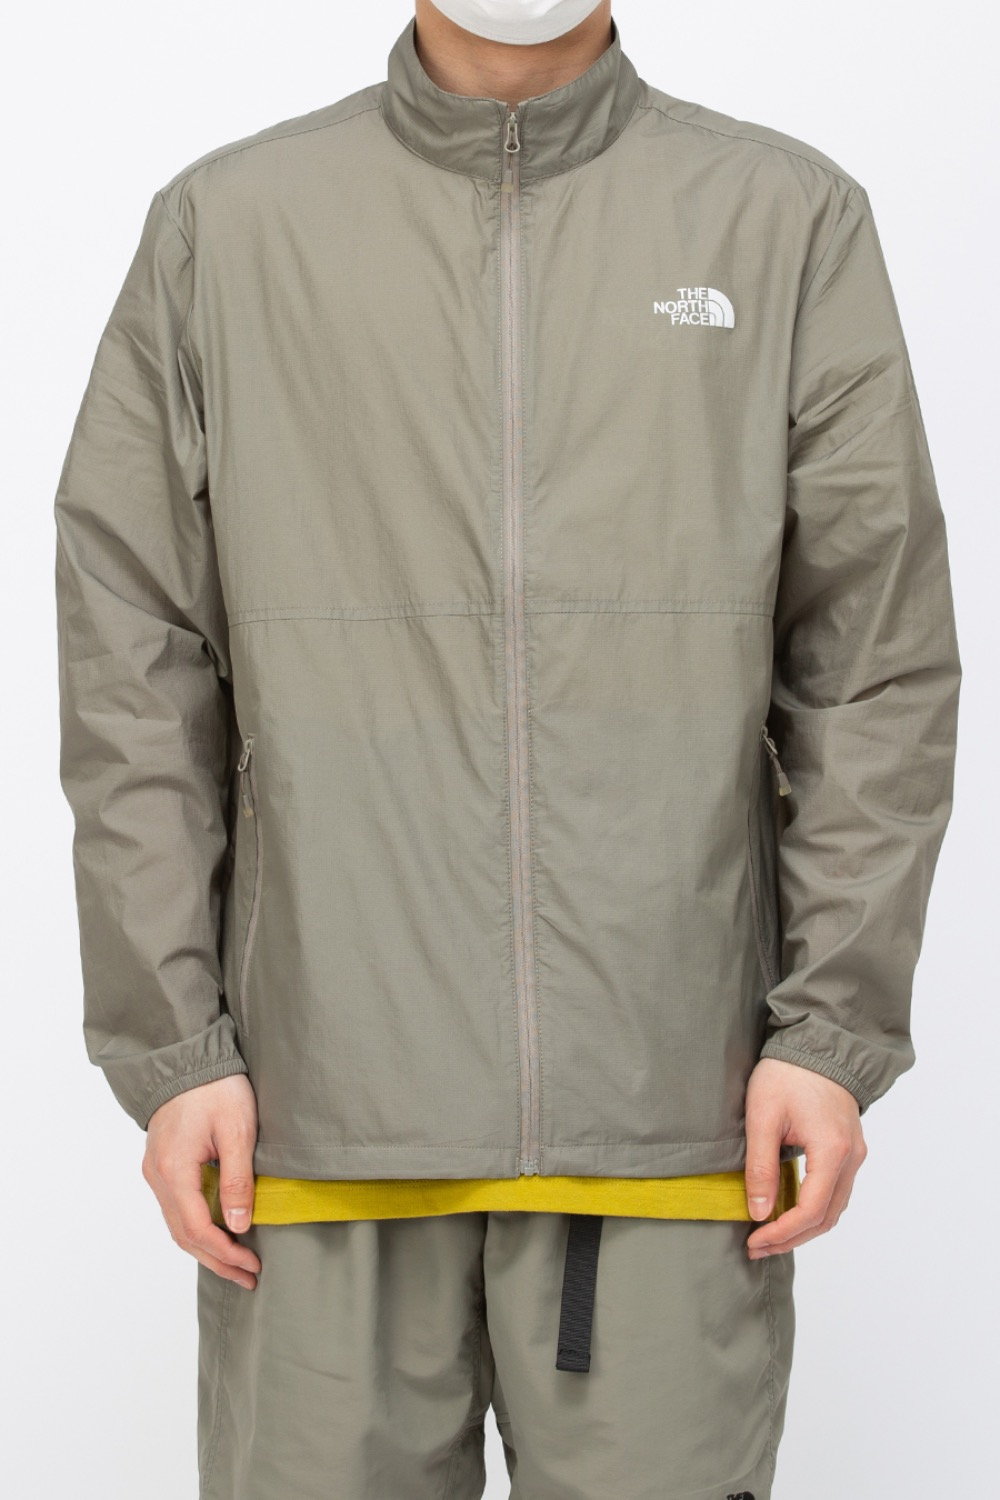 (NJ3LM04) M'S FLYHIGH JACKET KHAKI GREY